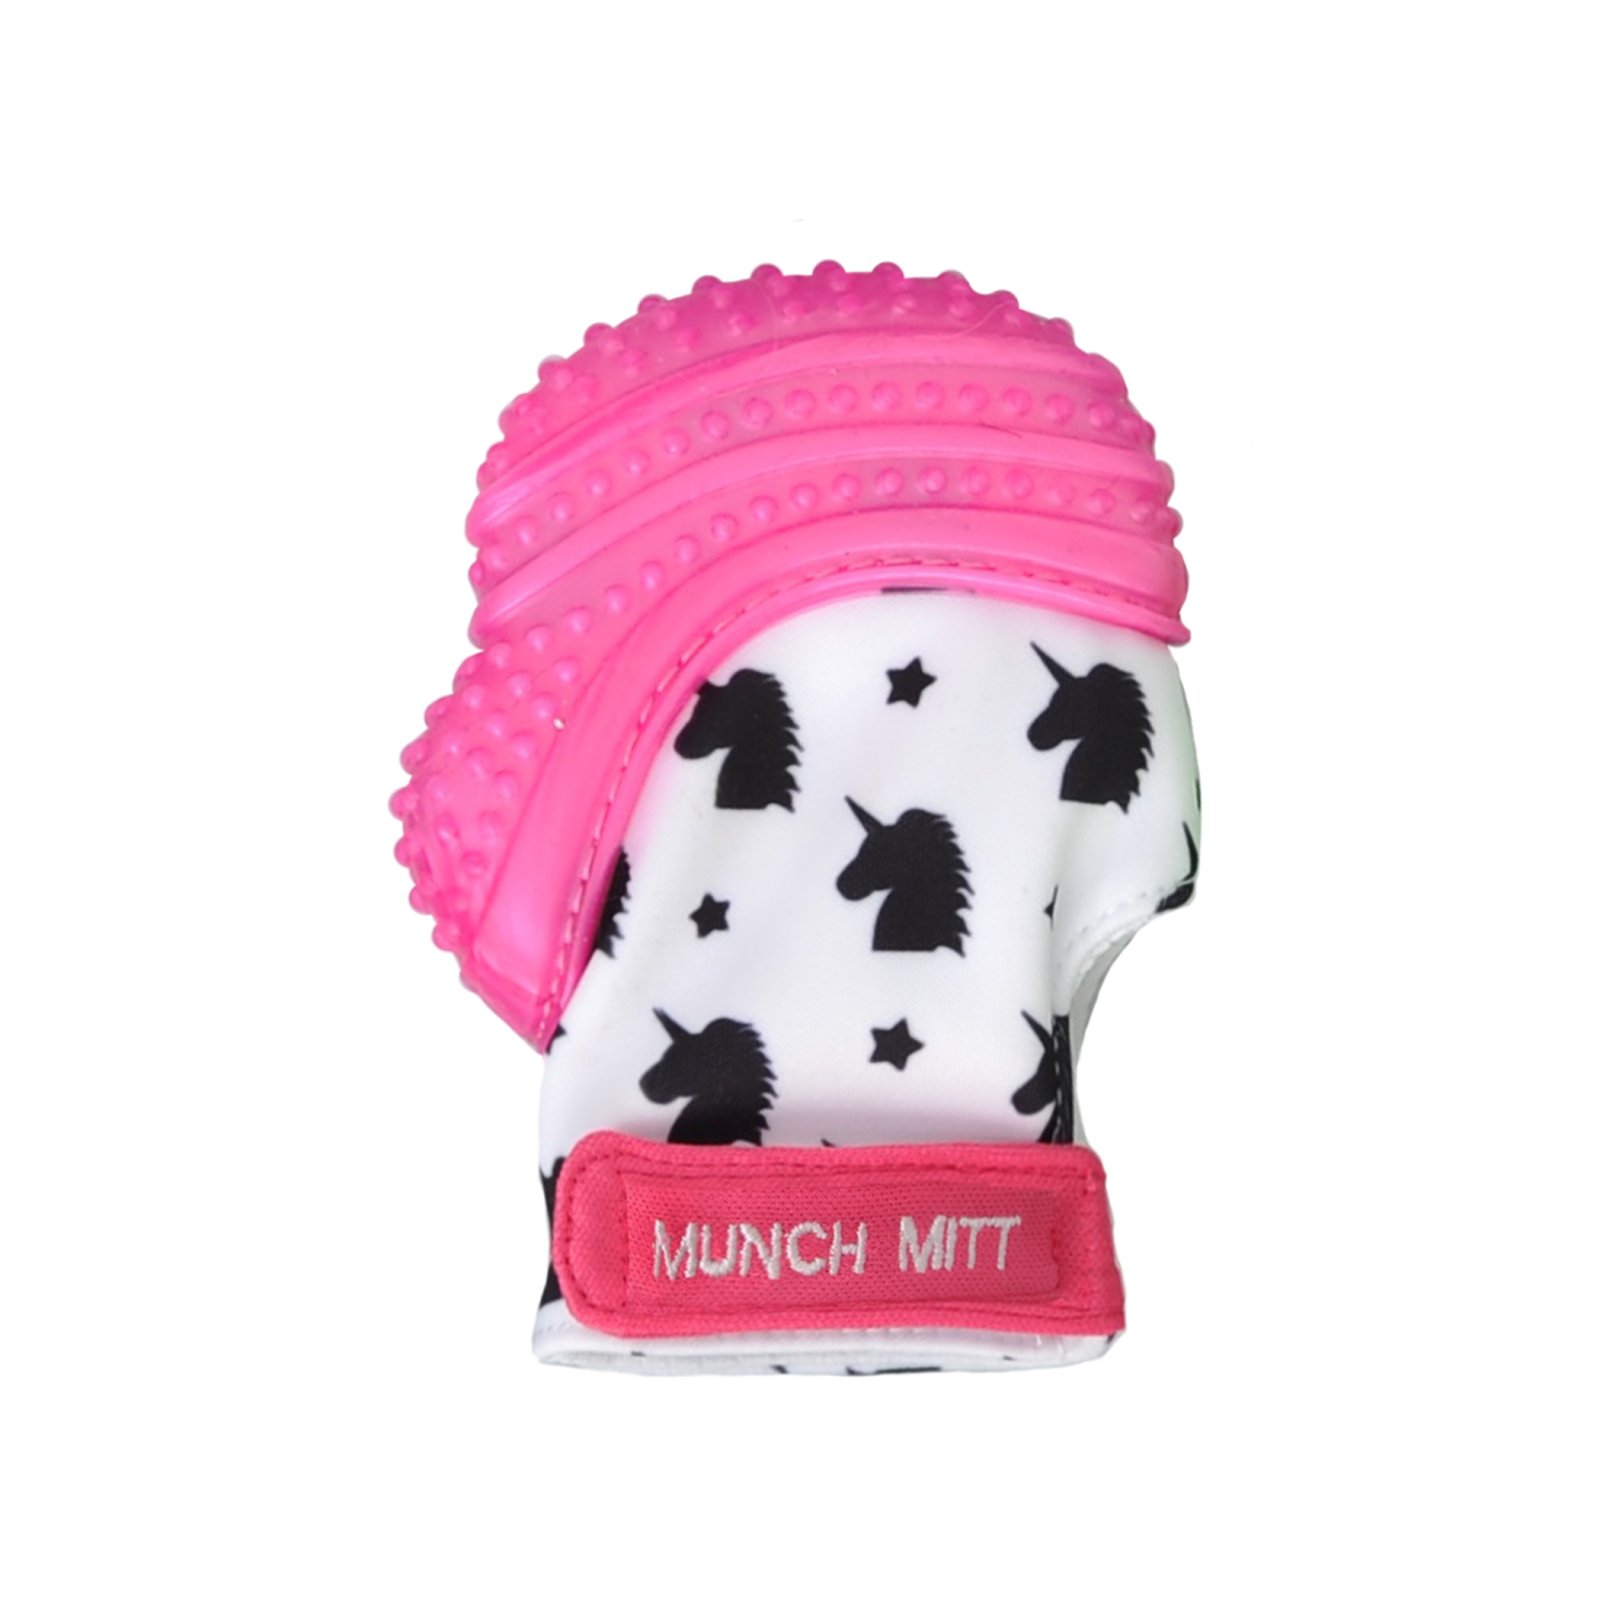 Malarkey Kids Munch Mitt Teething Mitten - The ORIGINAL Mom-Invented Silicone Teether Mitten with Travel Bag – Ideal Teething Toys for Baby Shower Gift  - Pink Unicorn